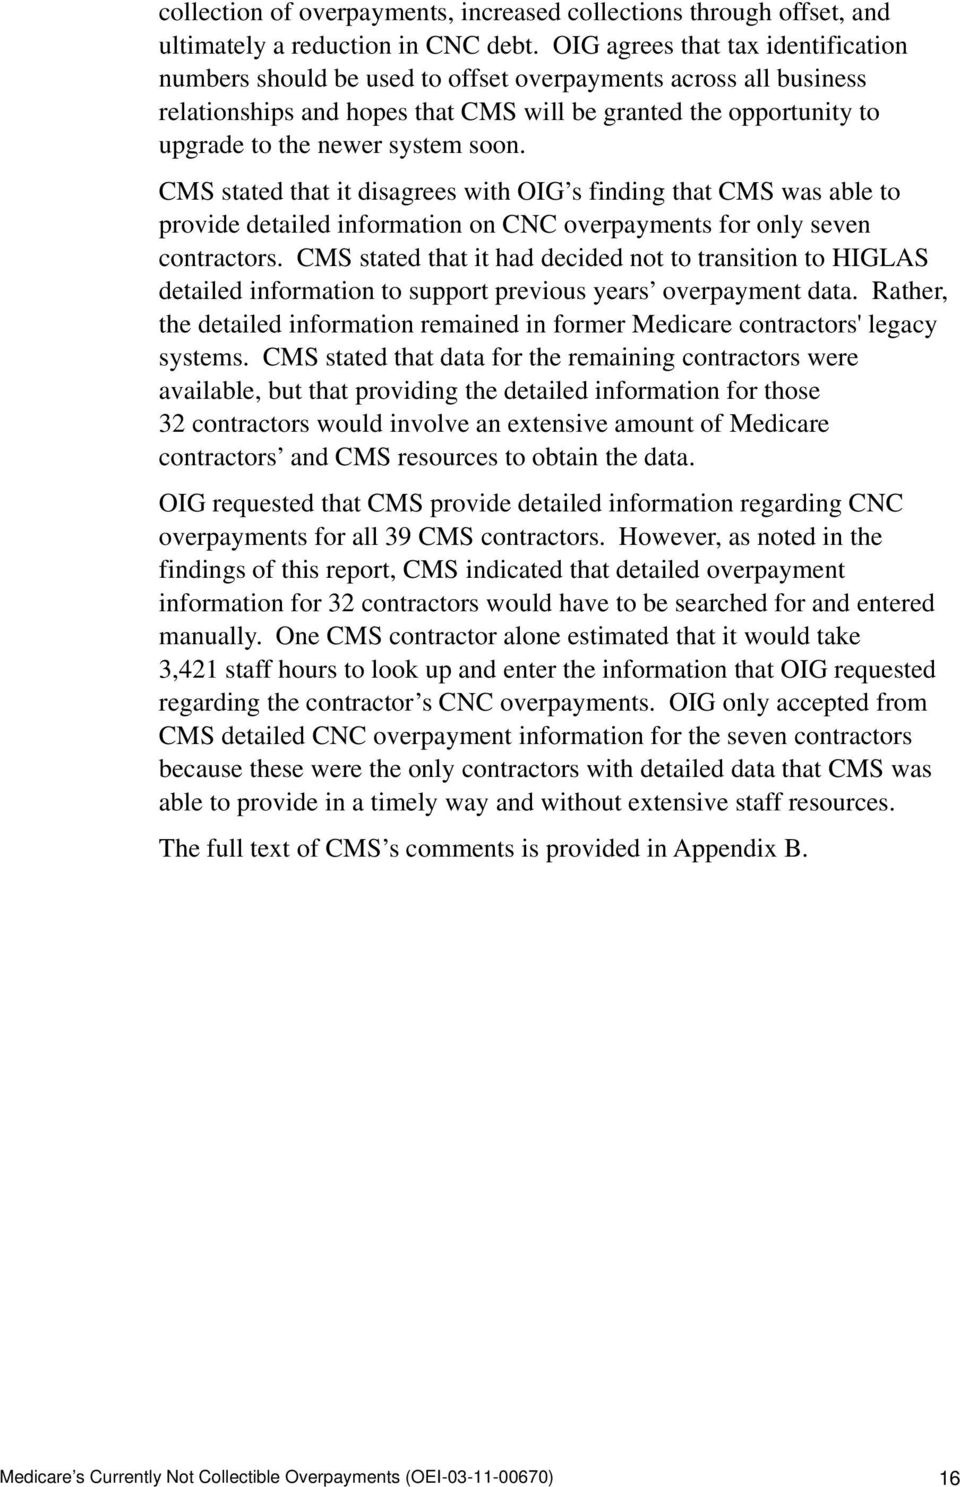 soon. CMS stated that it disagrees with OIG s finding that CMS was able to provide detailed information on CNC overpayments for only seven contractors.